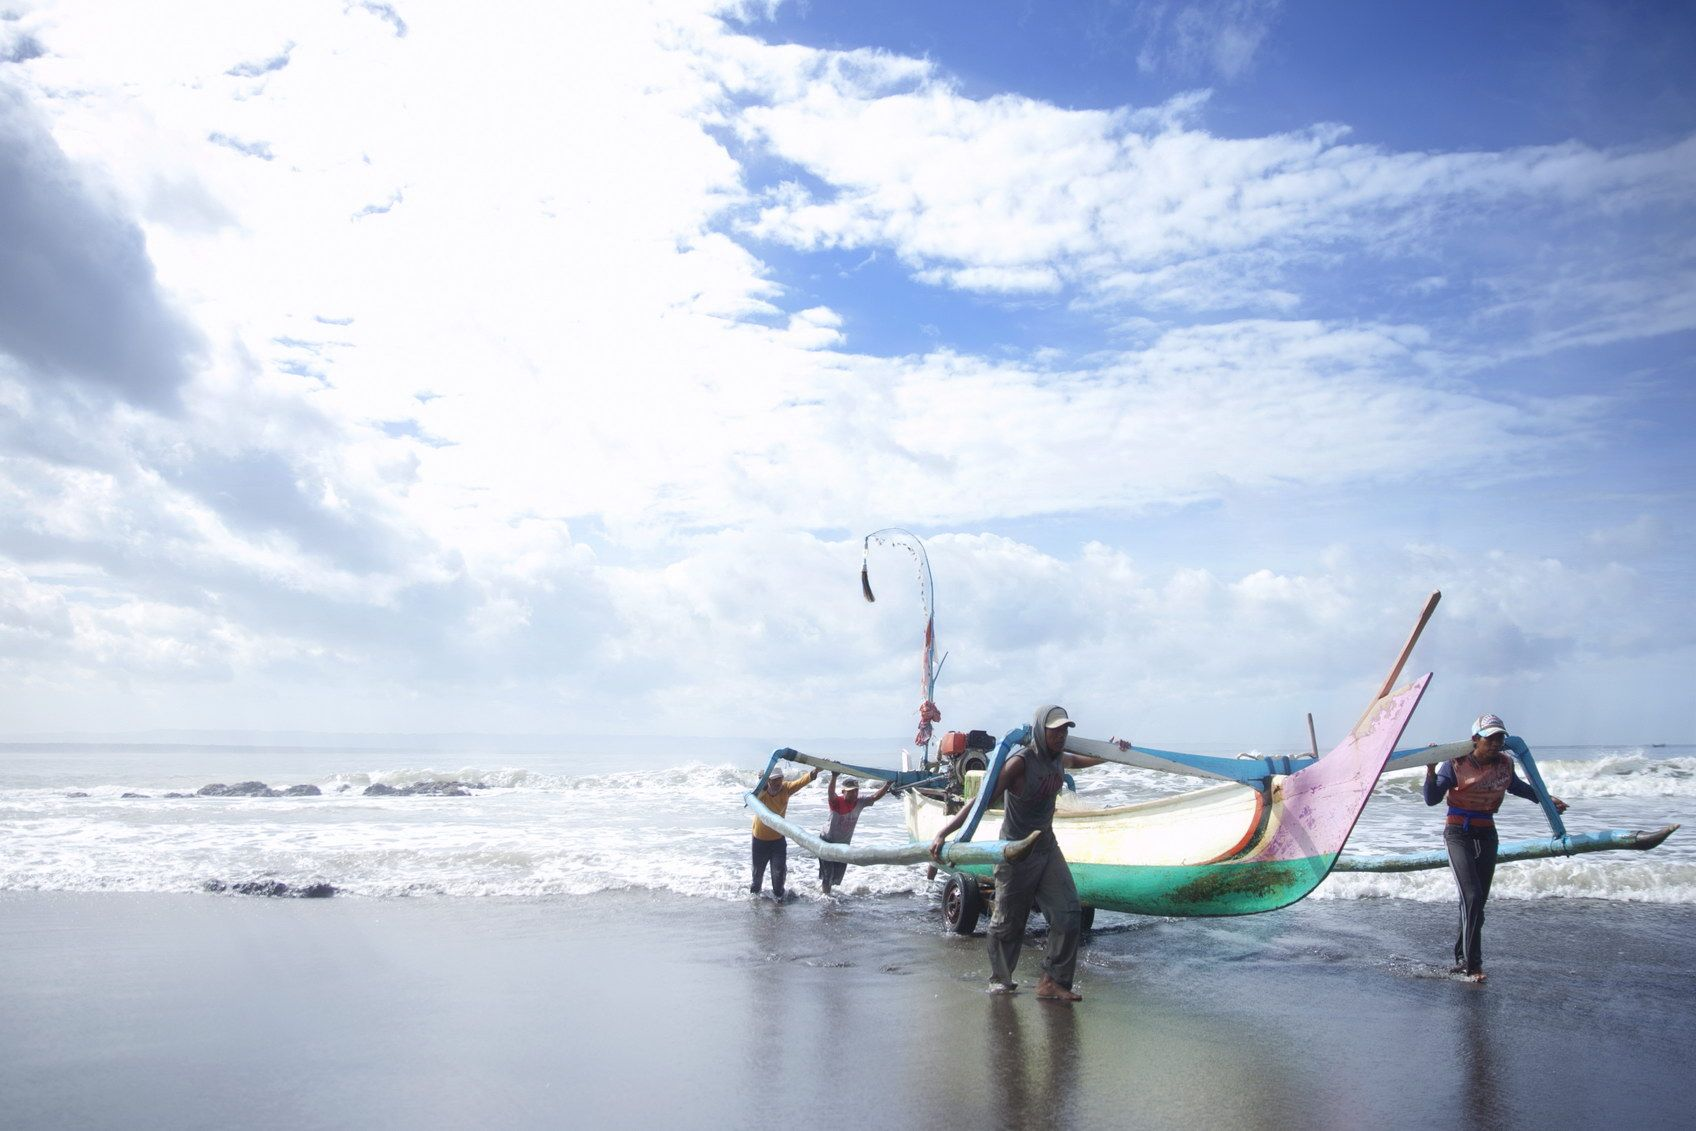 Some Seaman Pull Up Their Fishing Boat Somehow I Wonder How Do They Enjoy Their Lives With A Daily Routine Like This Hm Beautiful Indonesia Scenery East Java